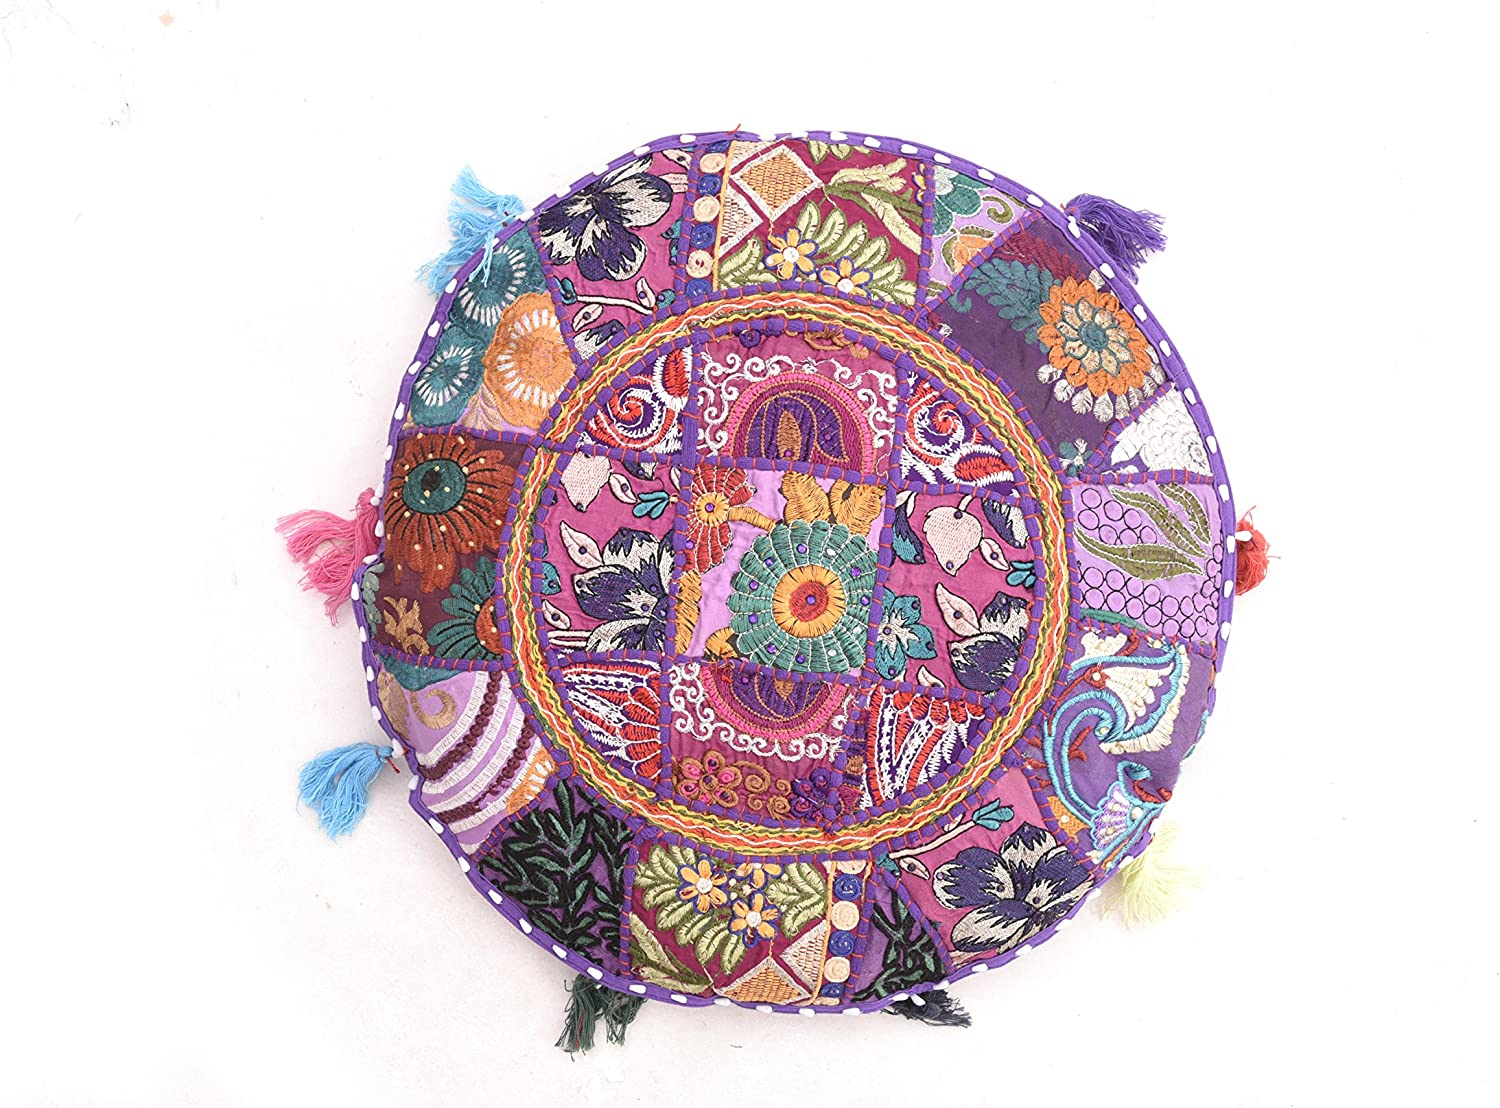 iinfinize Max 73% OFF Patch Work Now free shipping Floor Pillow Pouf Ottoma Patchwork Bohemian